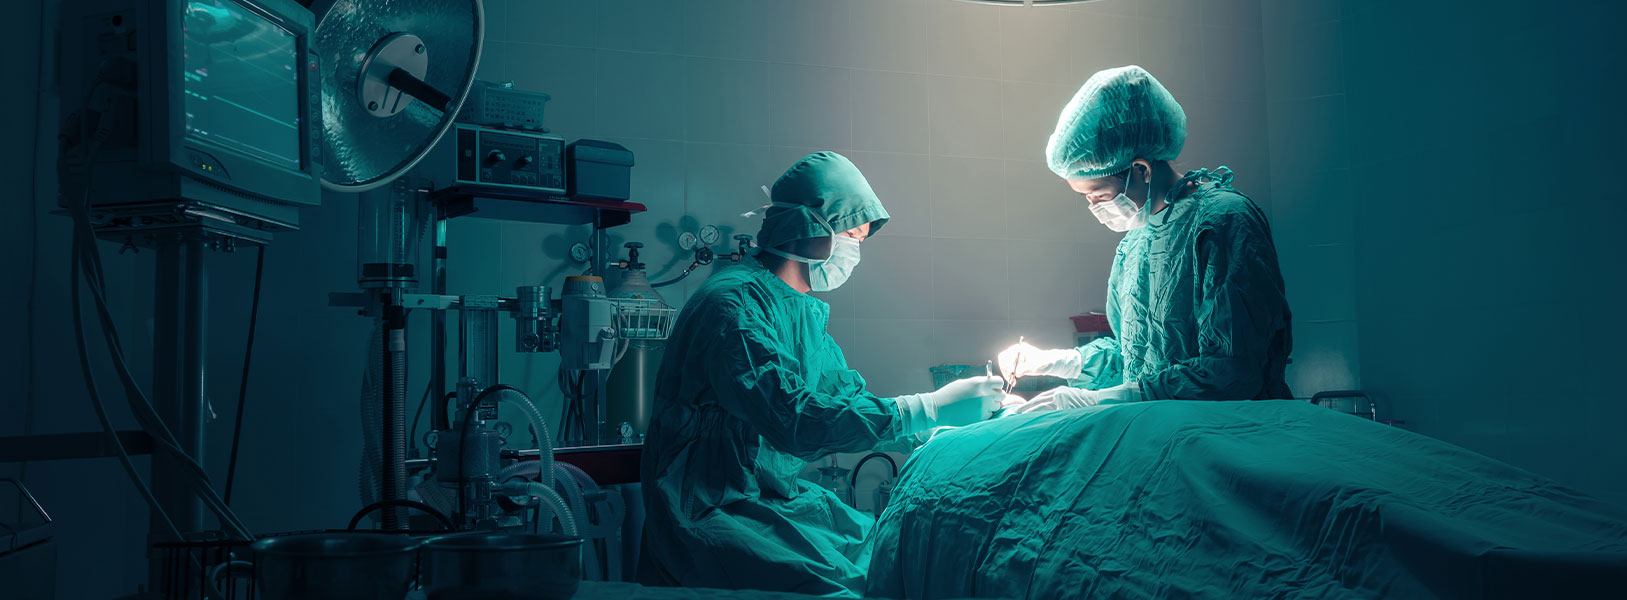 Two surgeons in full operating gear are operating on a patient